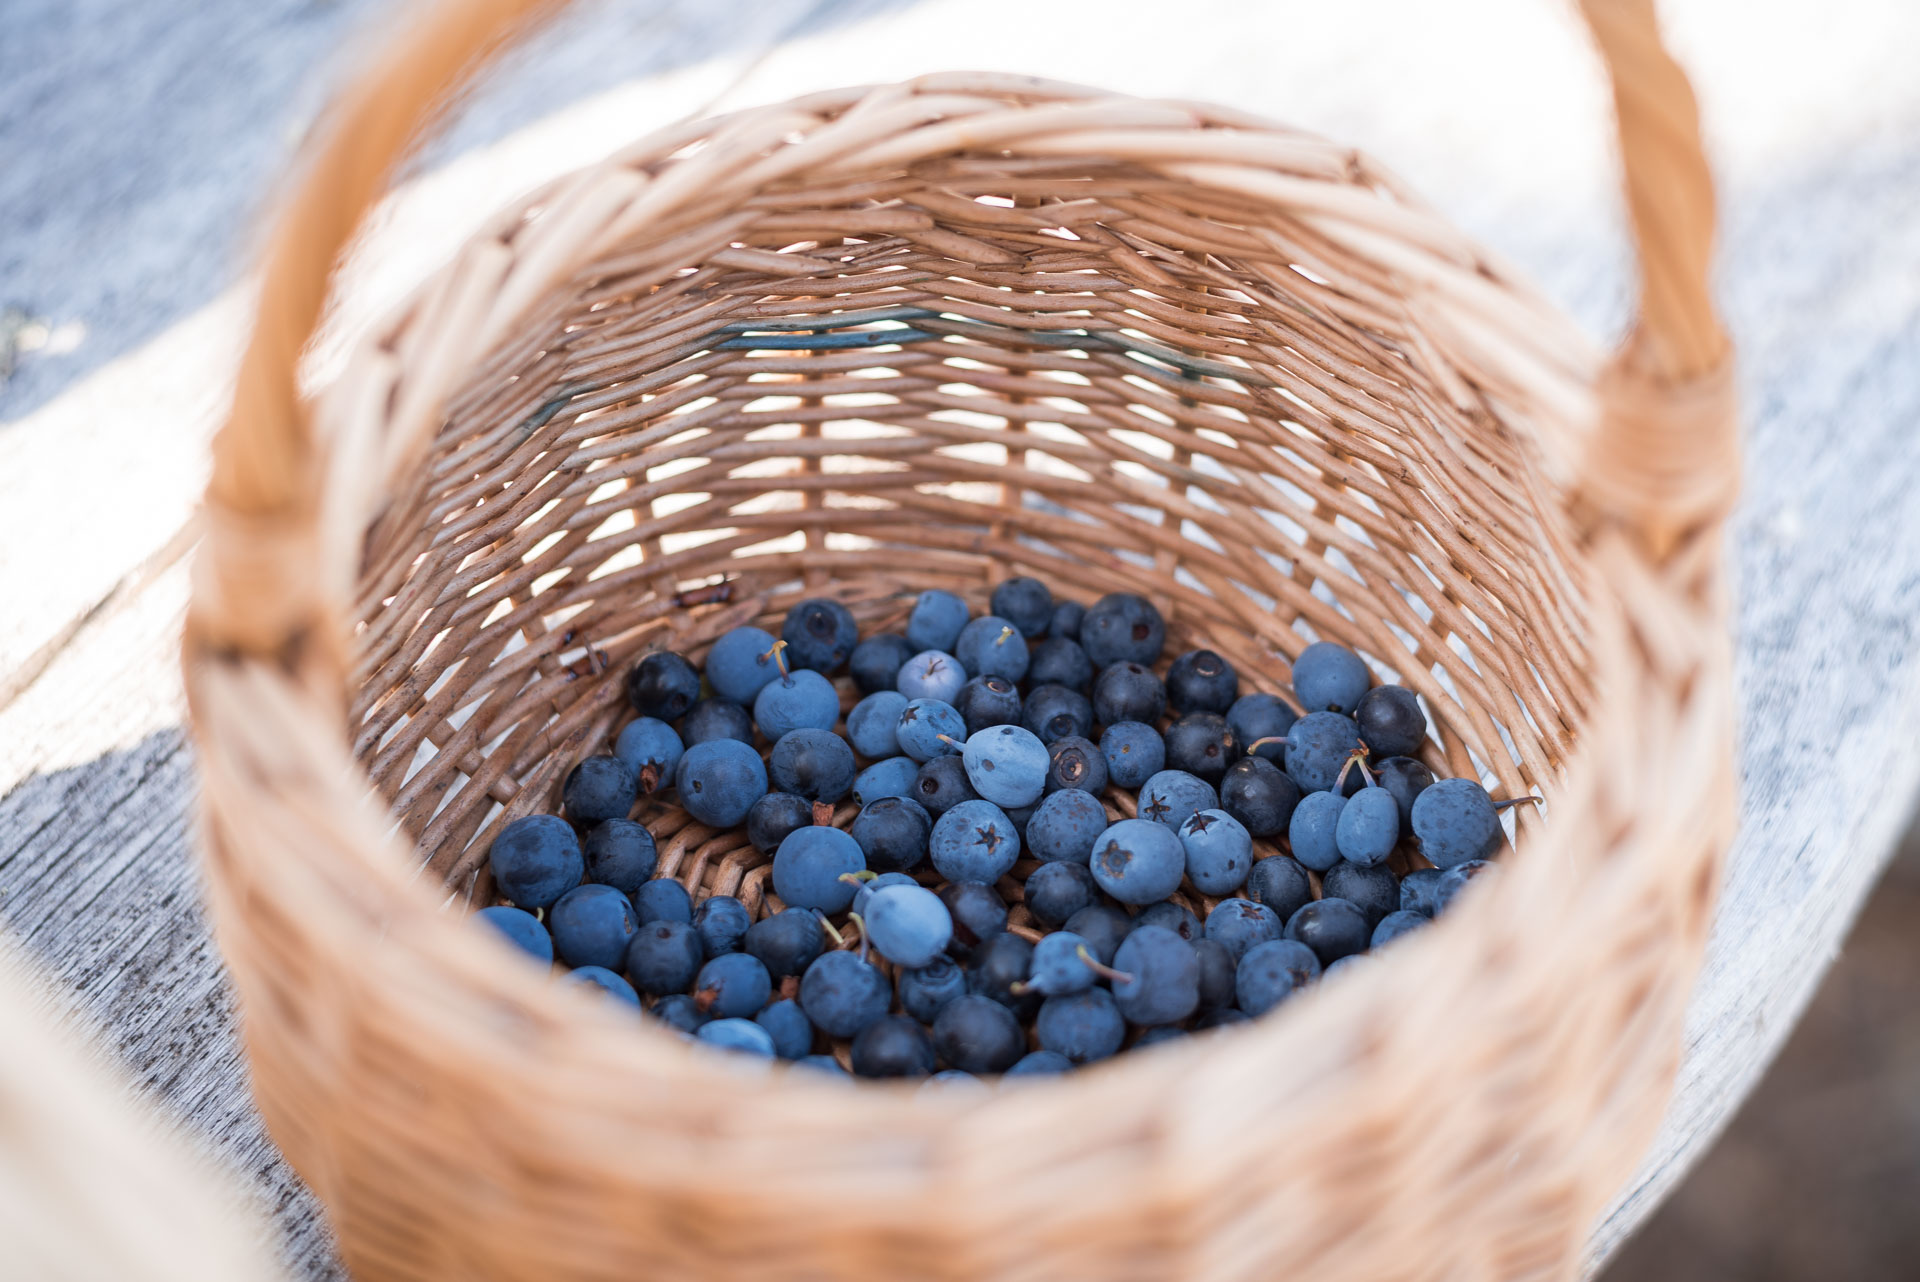 Bilberry picking, august 2018